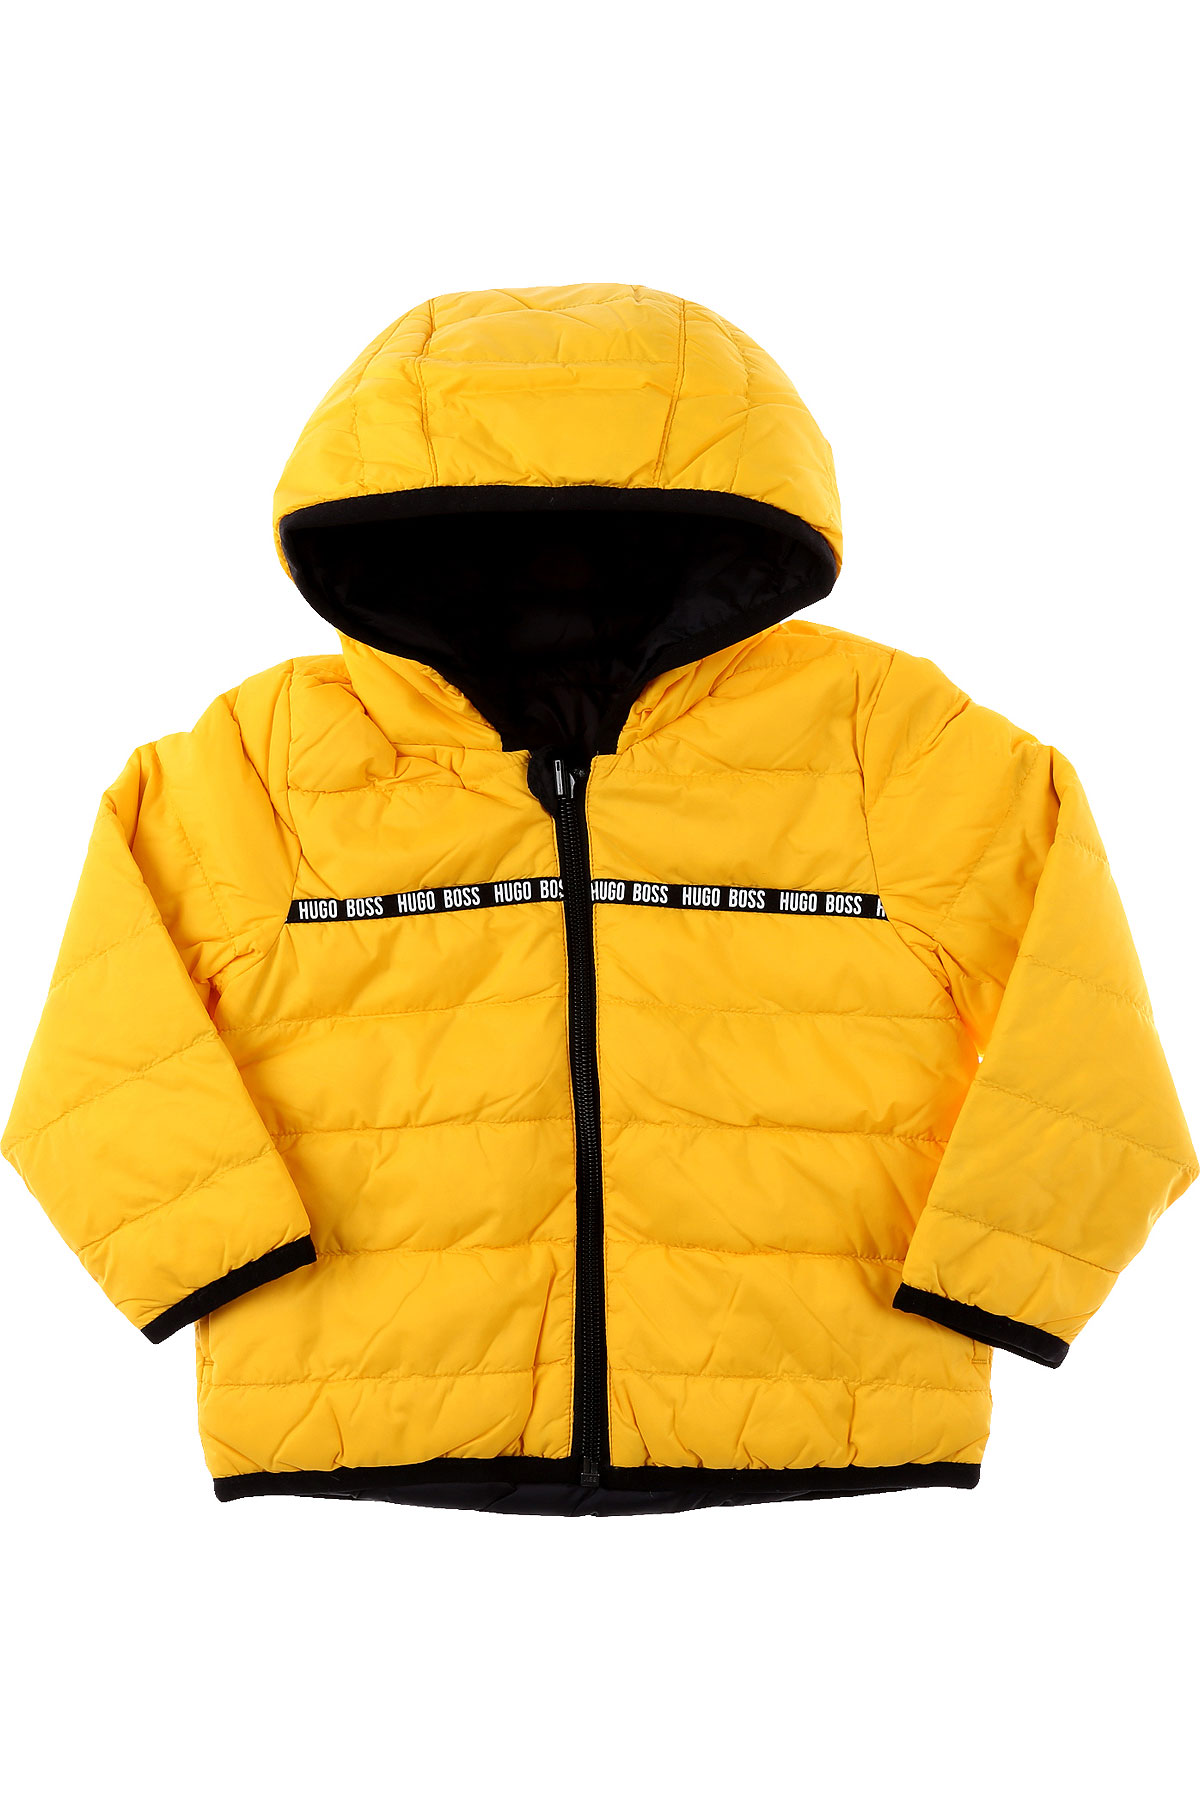 Hugo Boss Baby Down Jacket for Boys On Sale, Yellow, polyamide, 2019, 12 M 2Y 3Y 9M